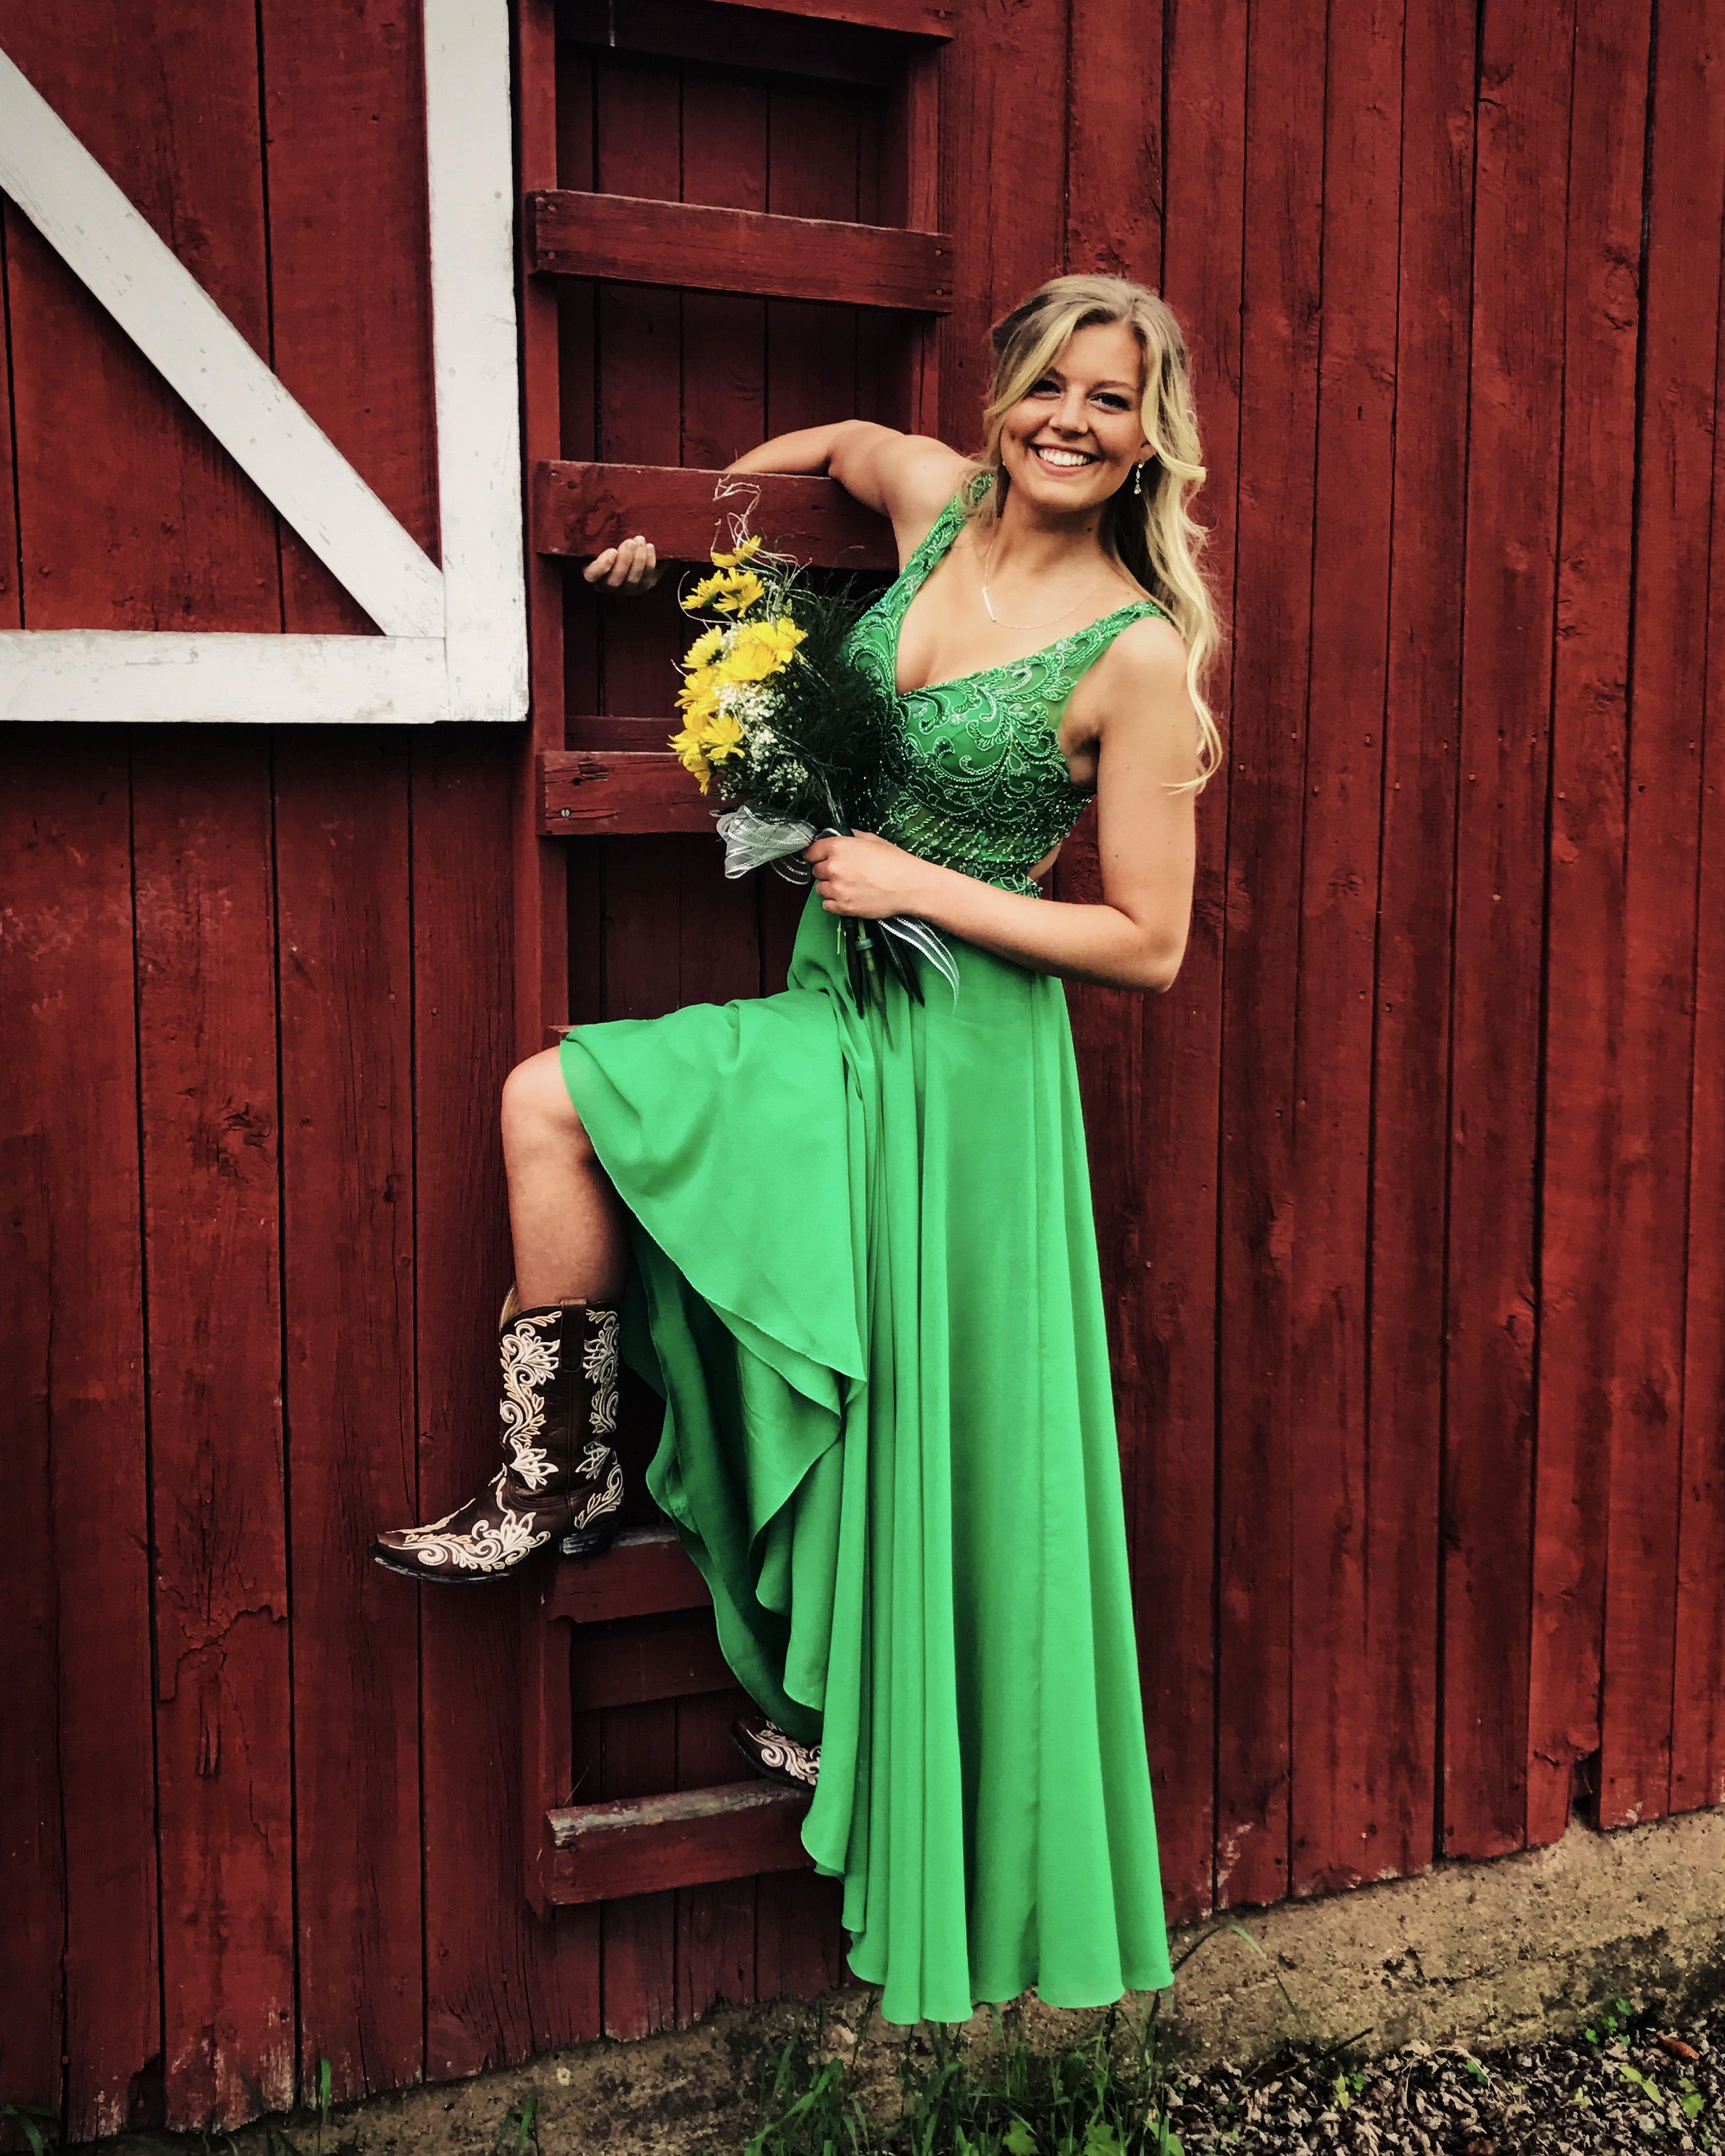 Stunning Kelly Green Prom Dress Open Back With Cowgirl Boots Kelly Green Dresses Green Prom Dress Green Dress [ 3780 x 3024 Pixel ]